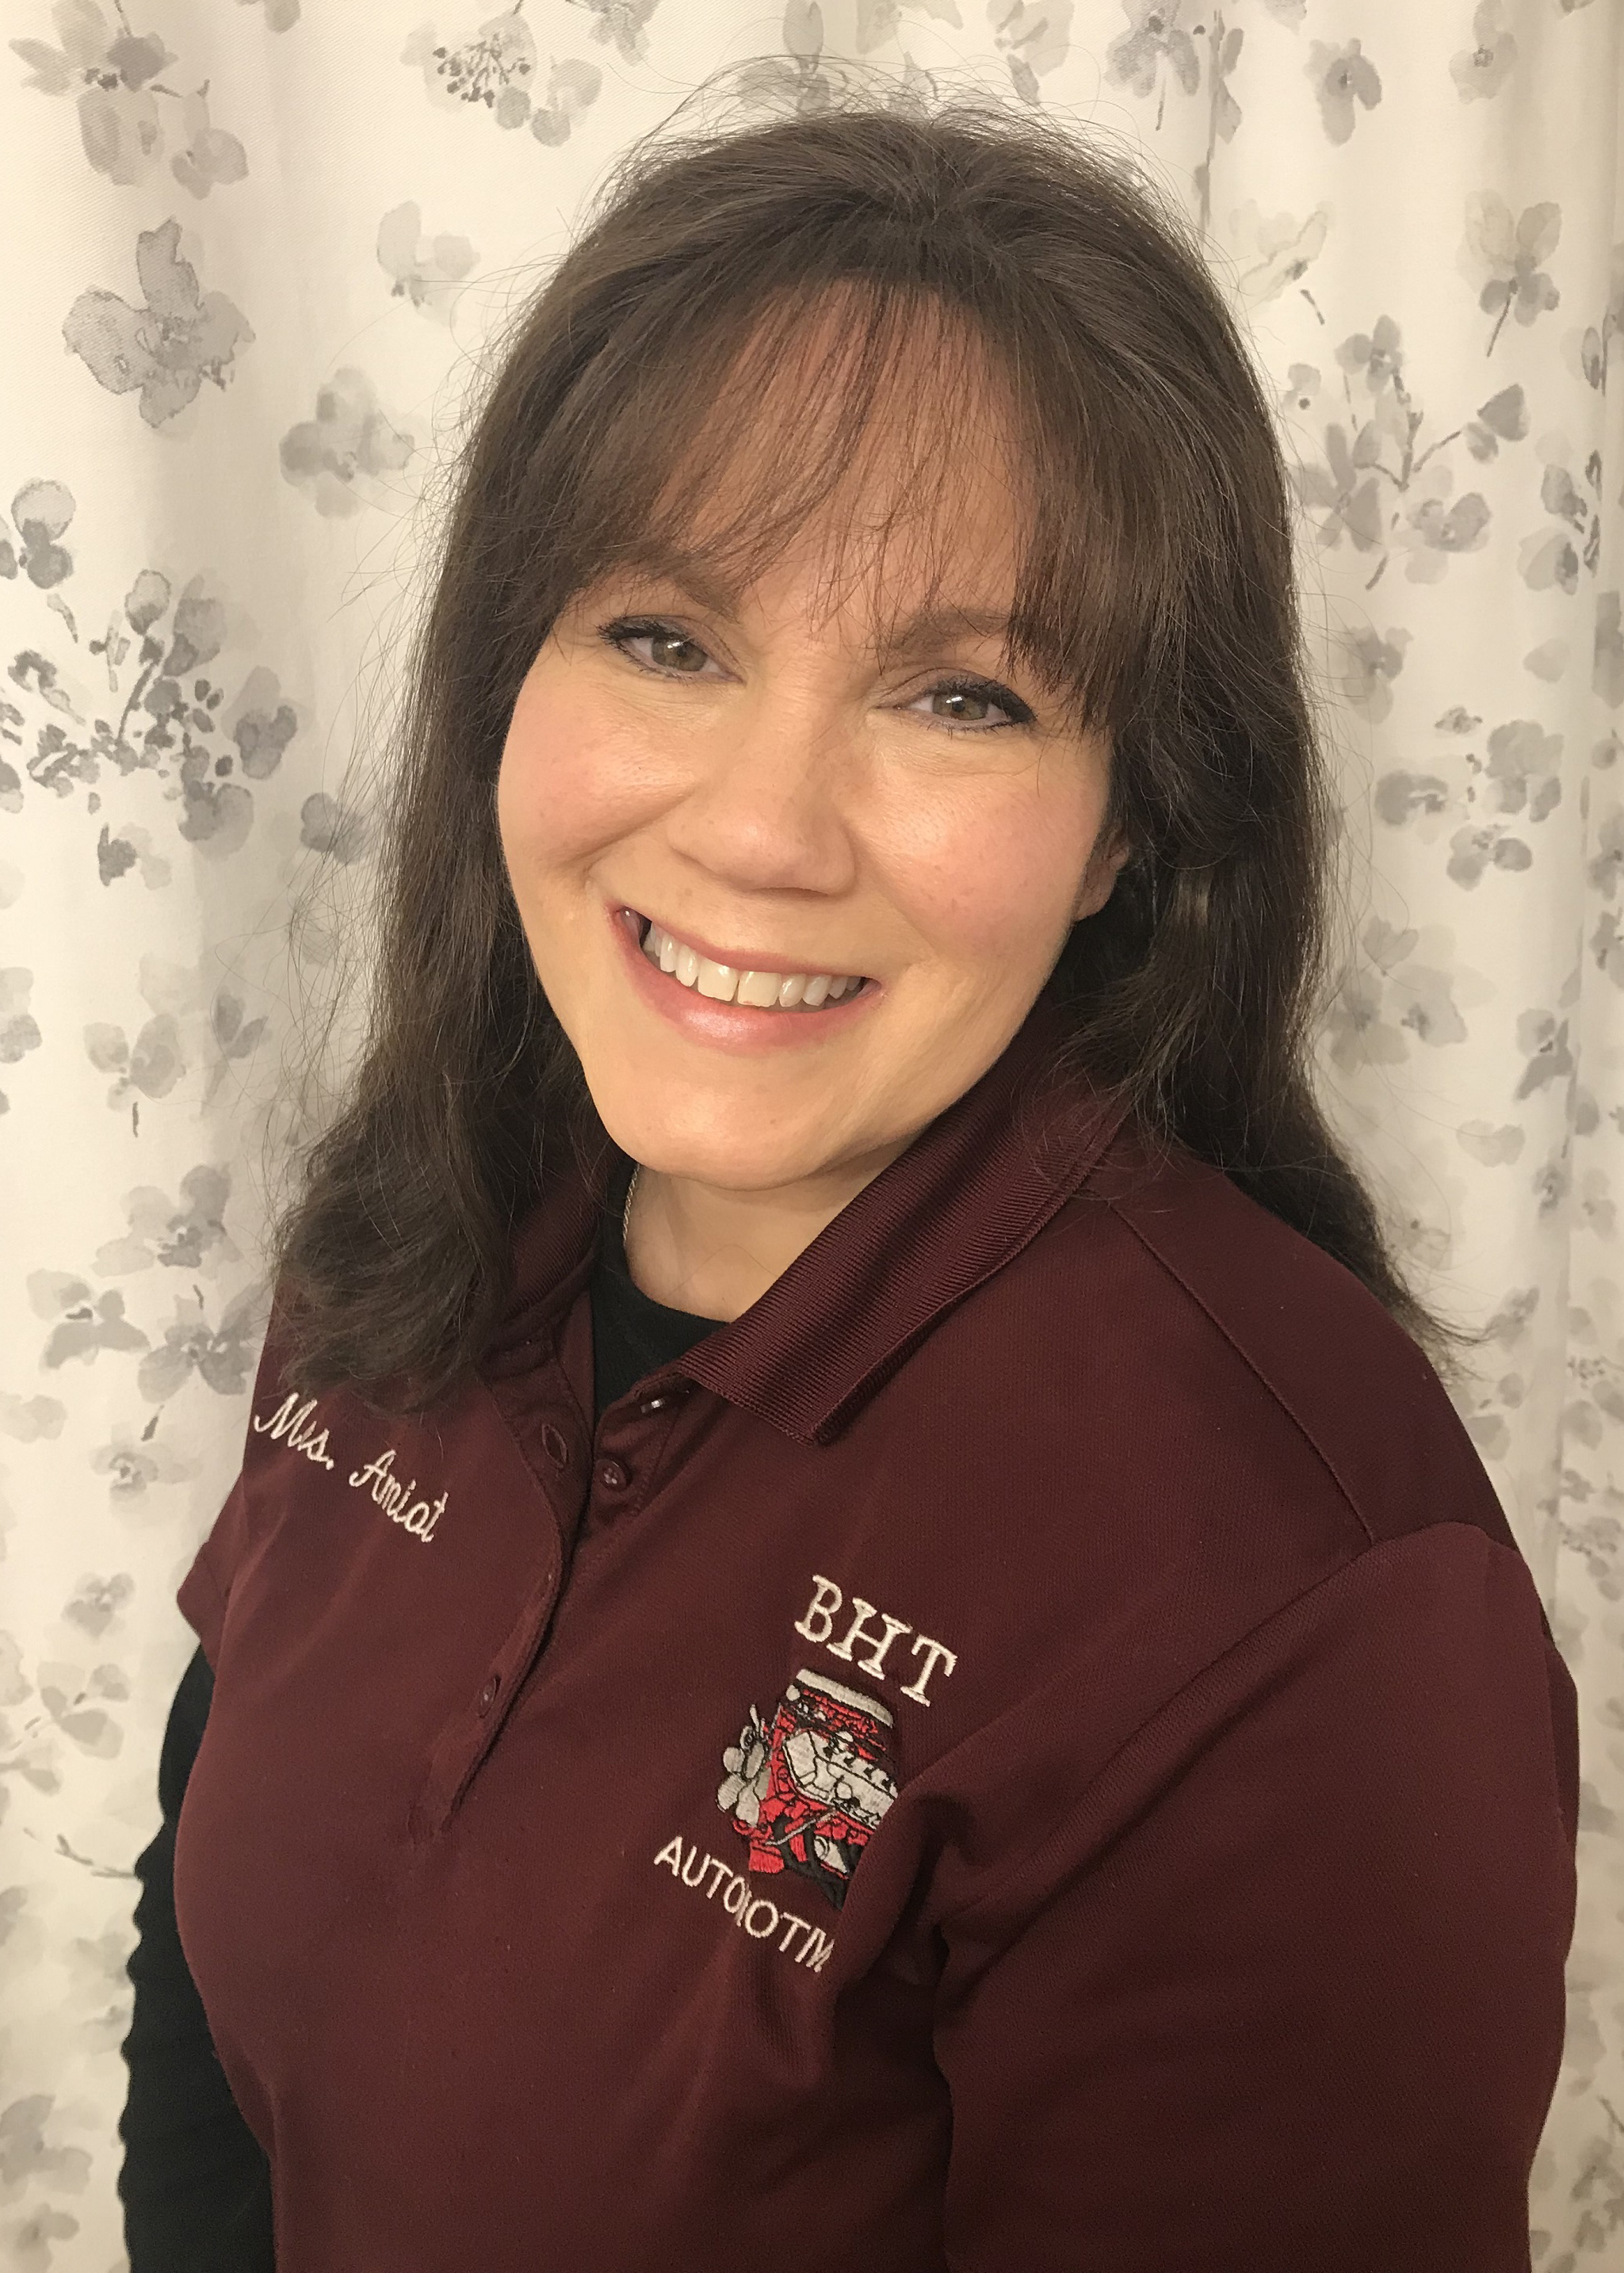 191009 SEMA Recognizes Automotive Educators - Roxanne Amiot from Bullard-Havens Technical High School in Bridgeport CT [1]